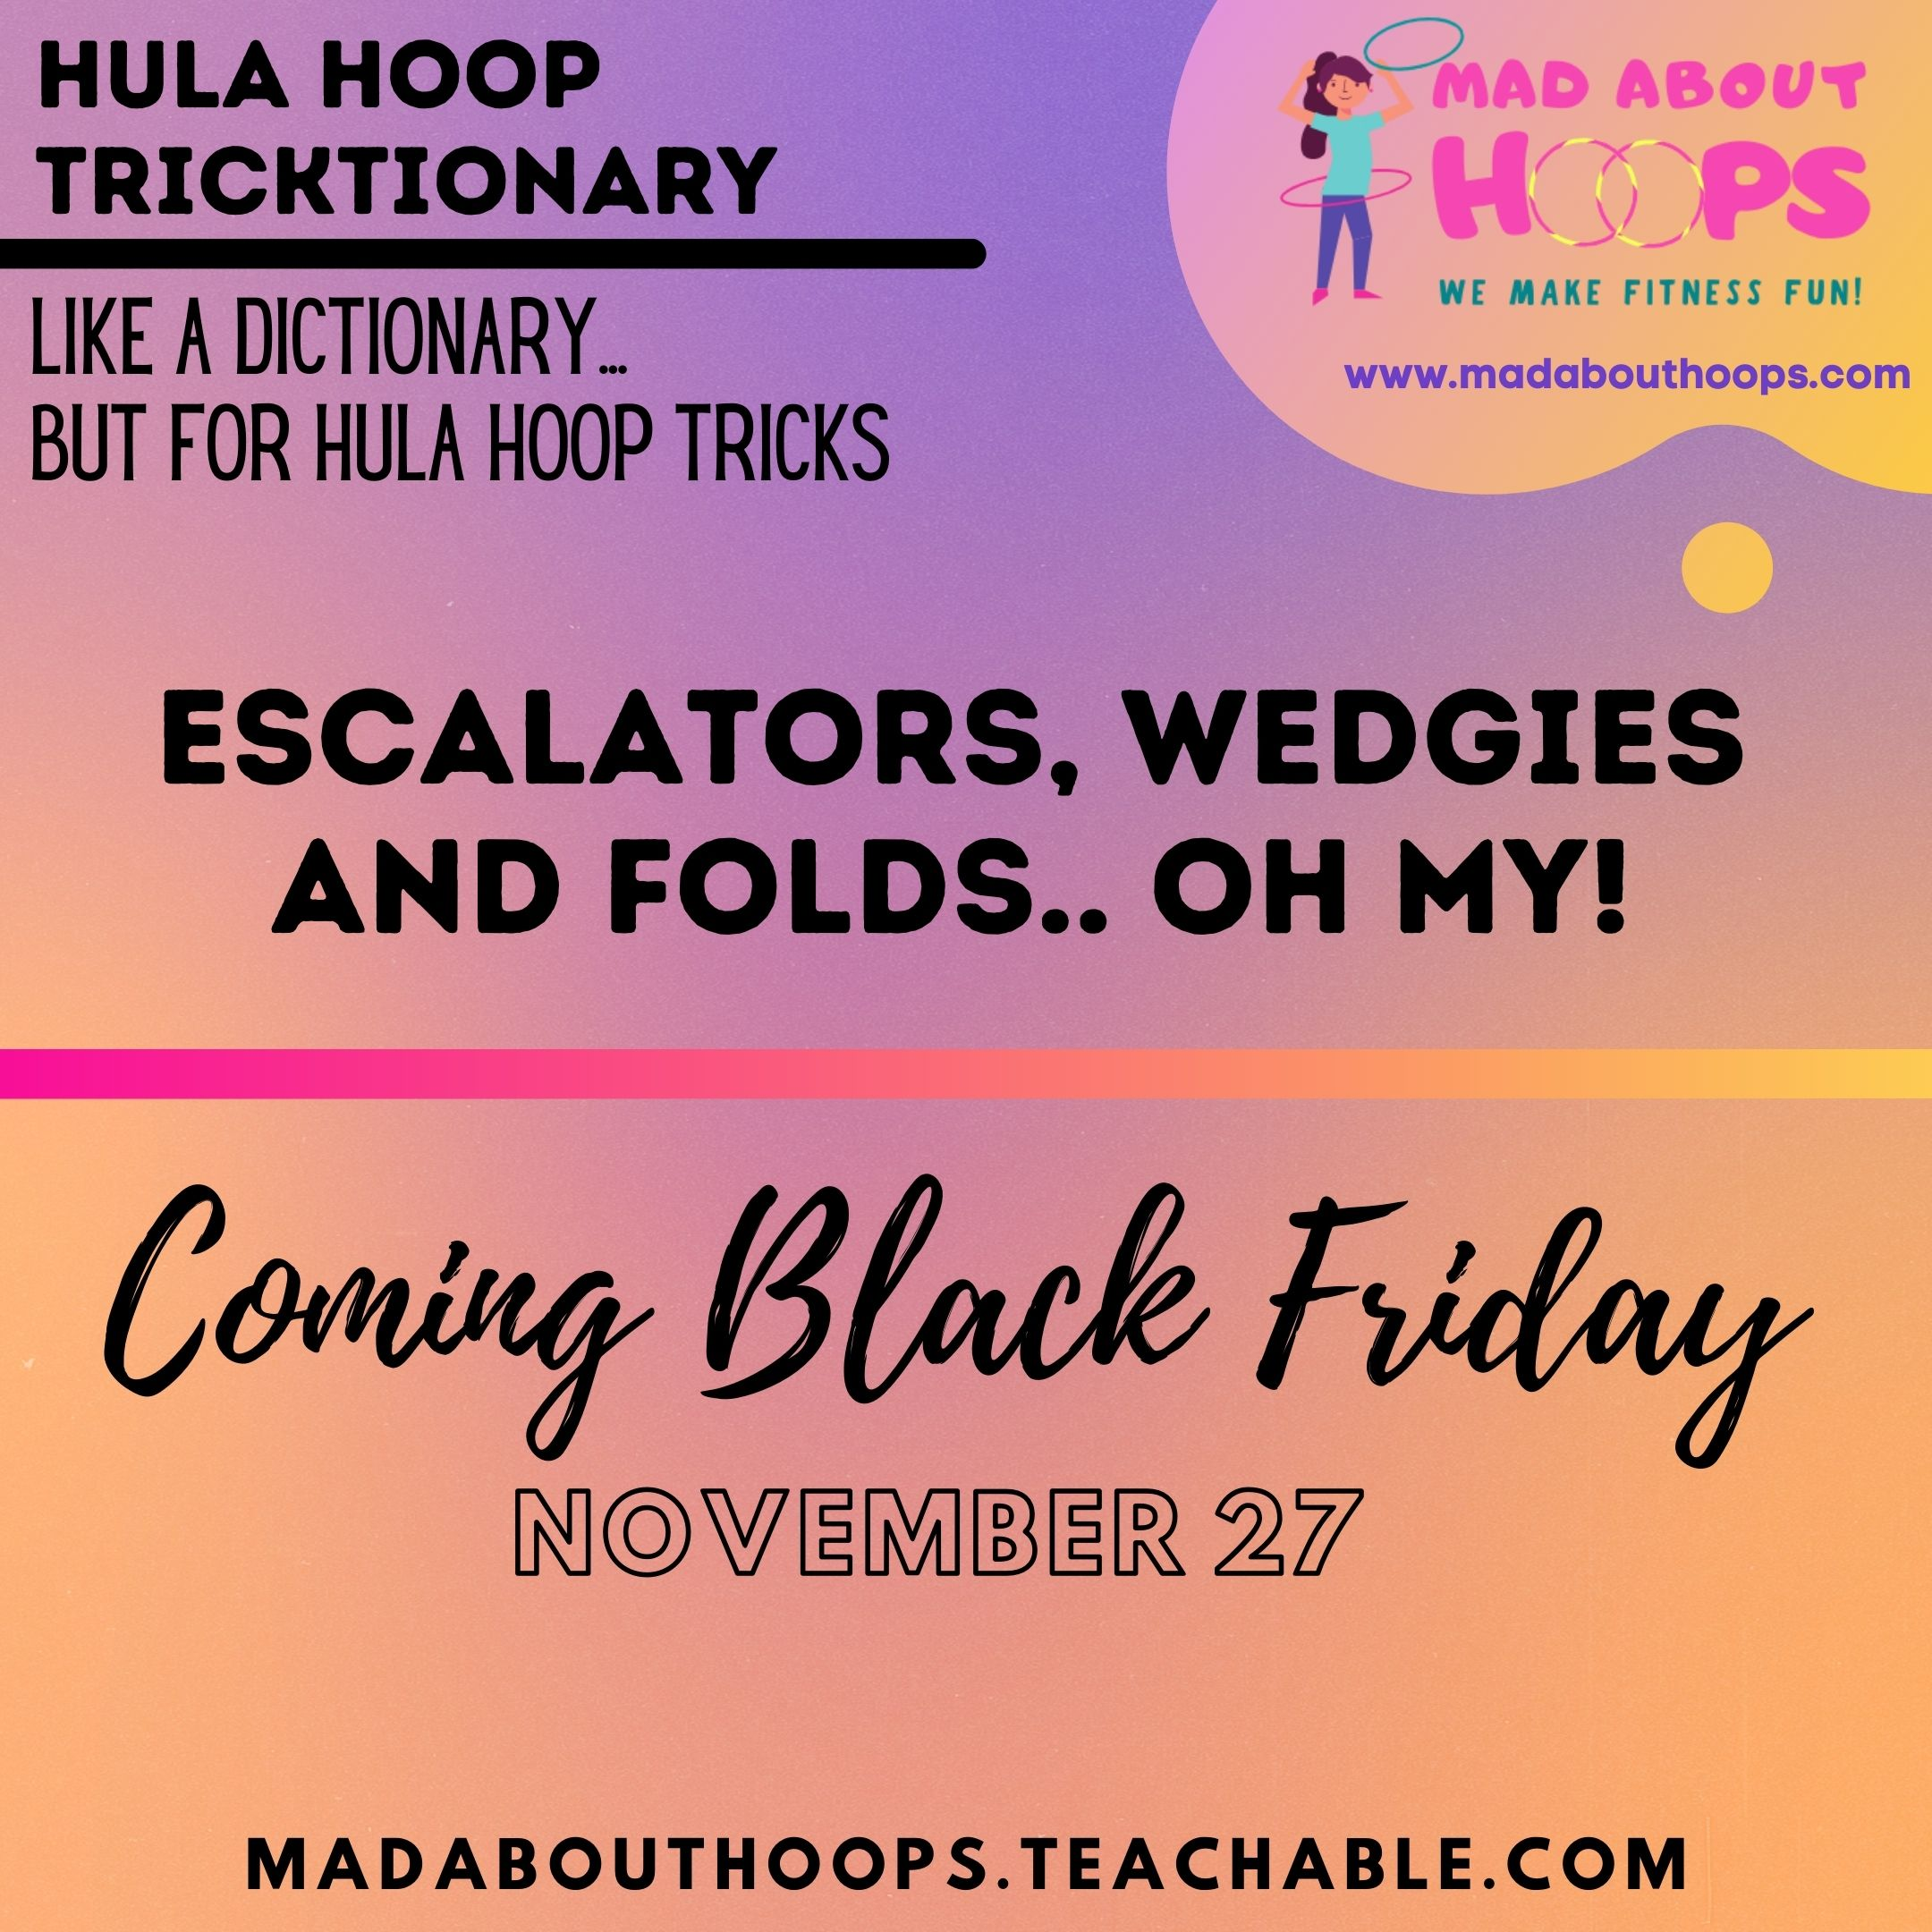 https://madabouthoops.teachable.com/p/tricktionary-ob1-1